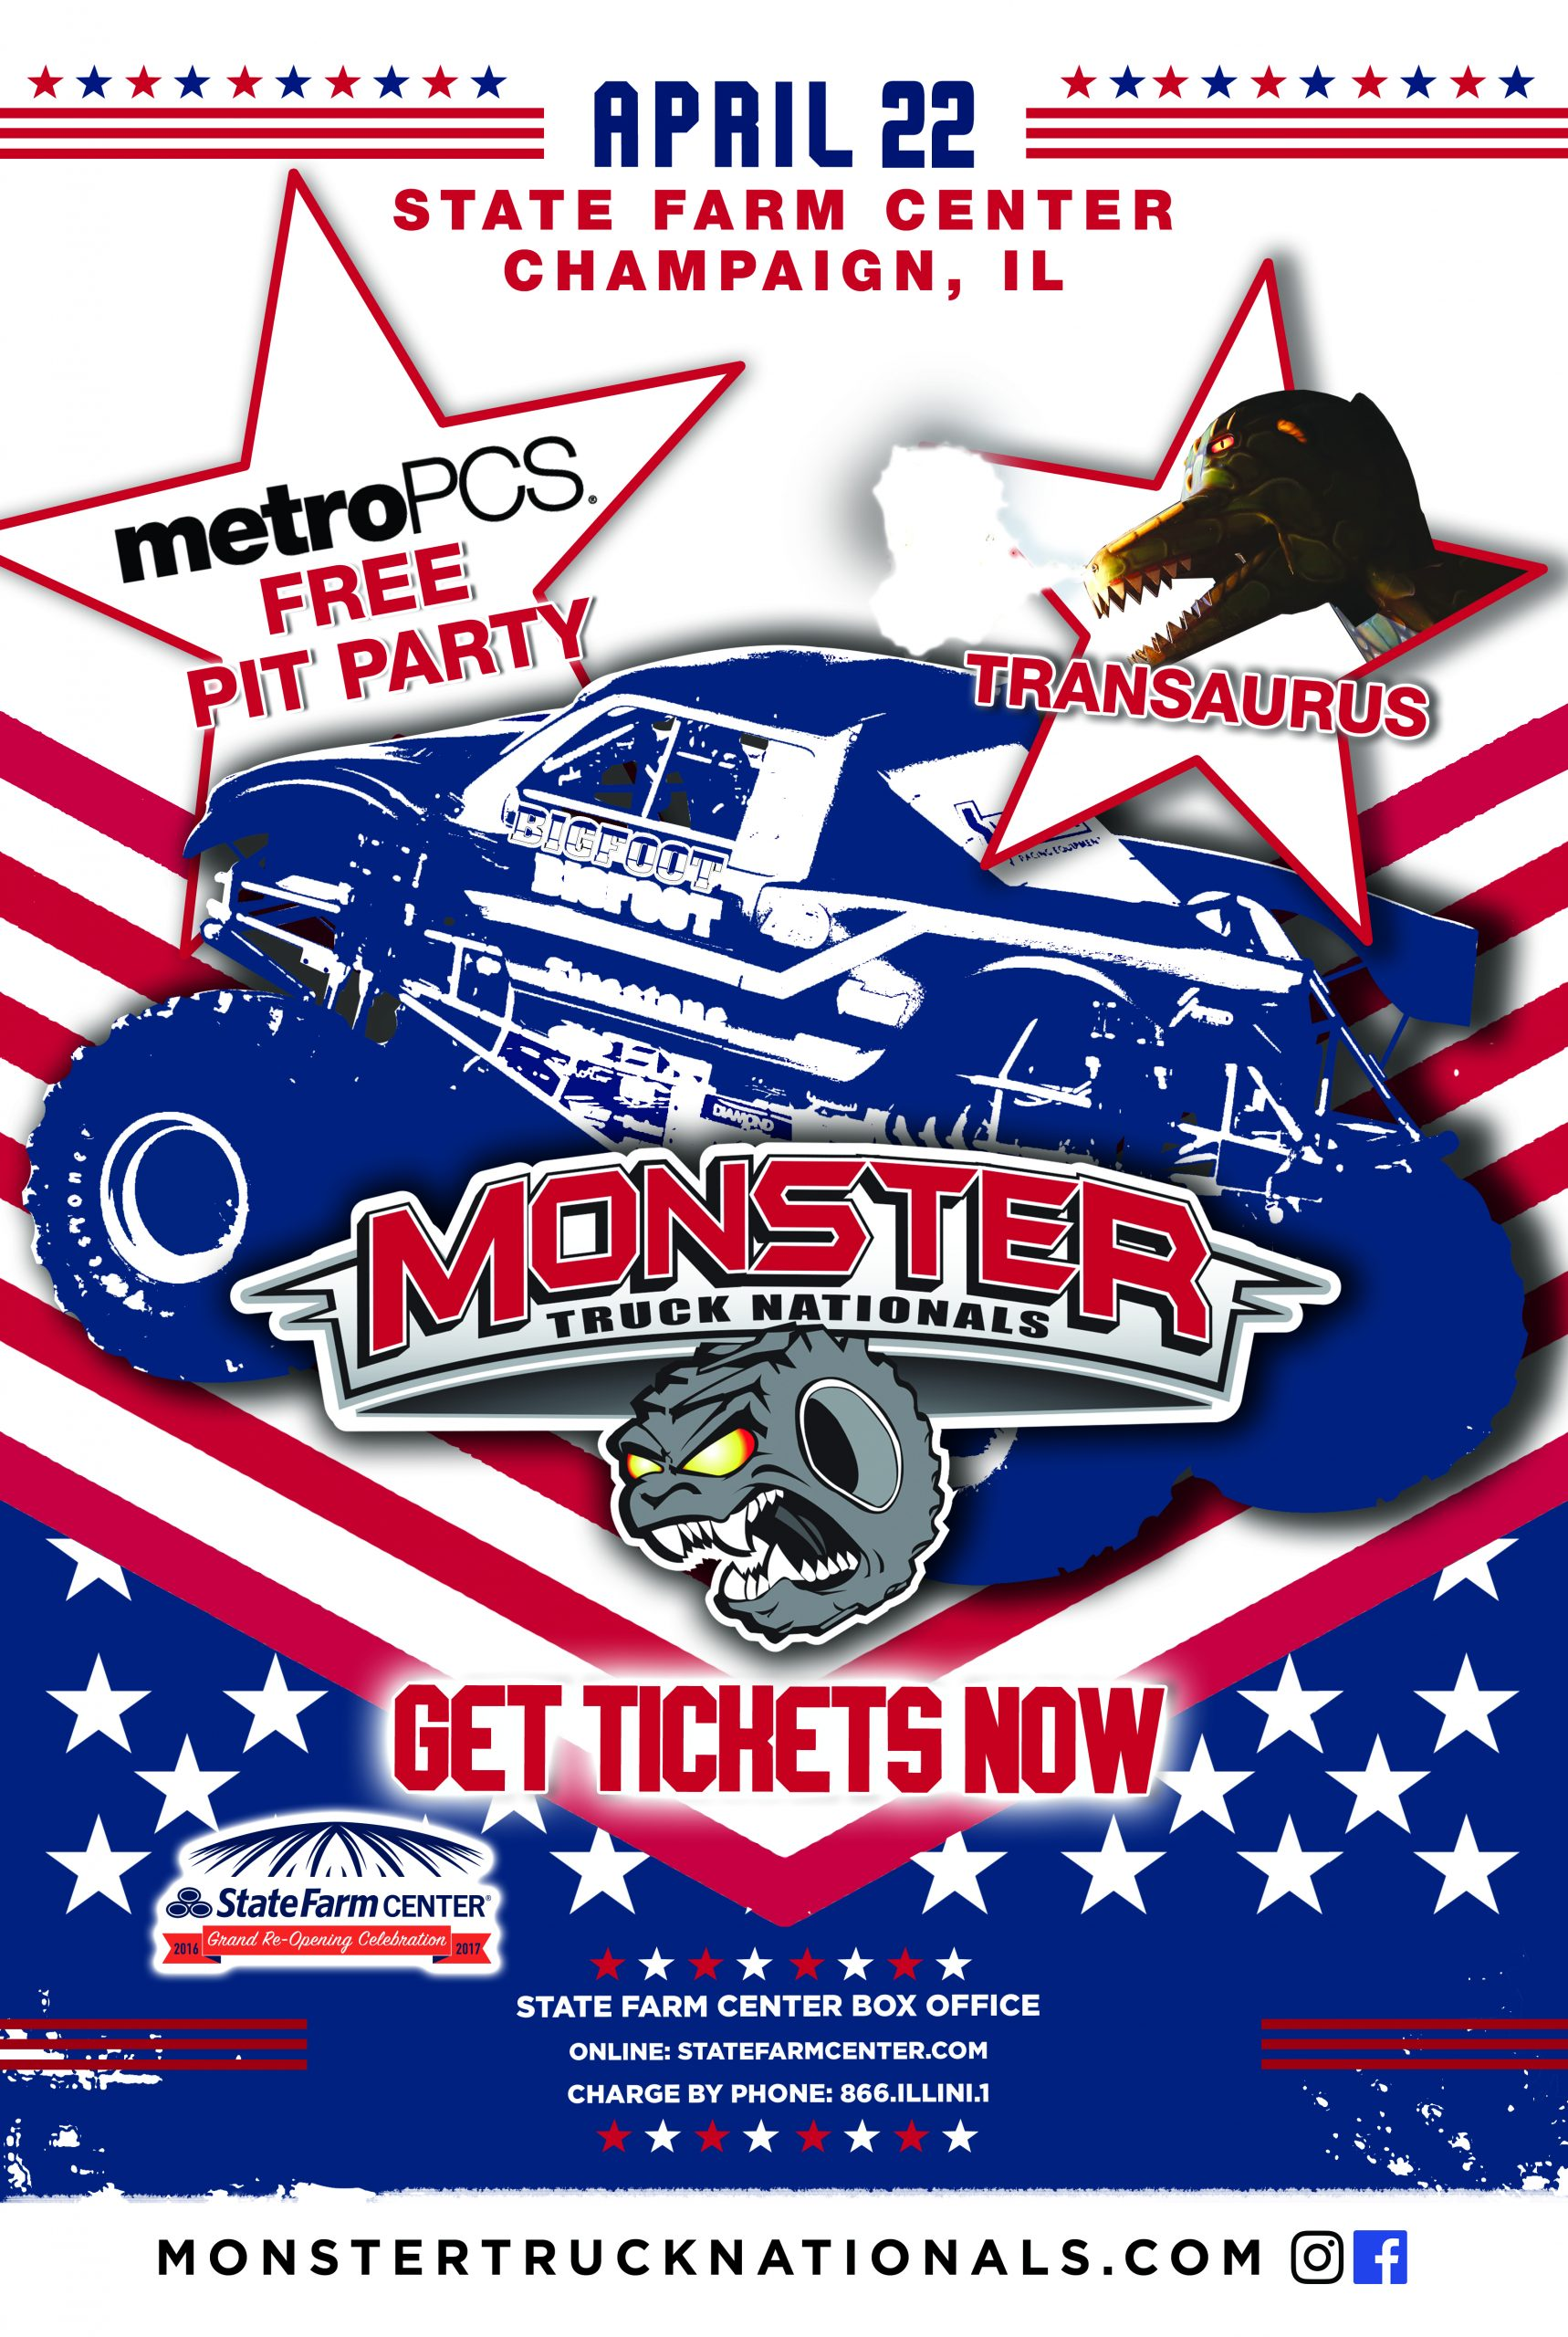 Two More Chances to Win Tickets to the Monster Truck Nationals